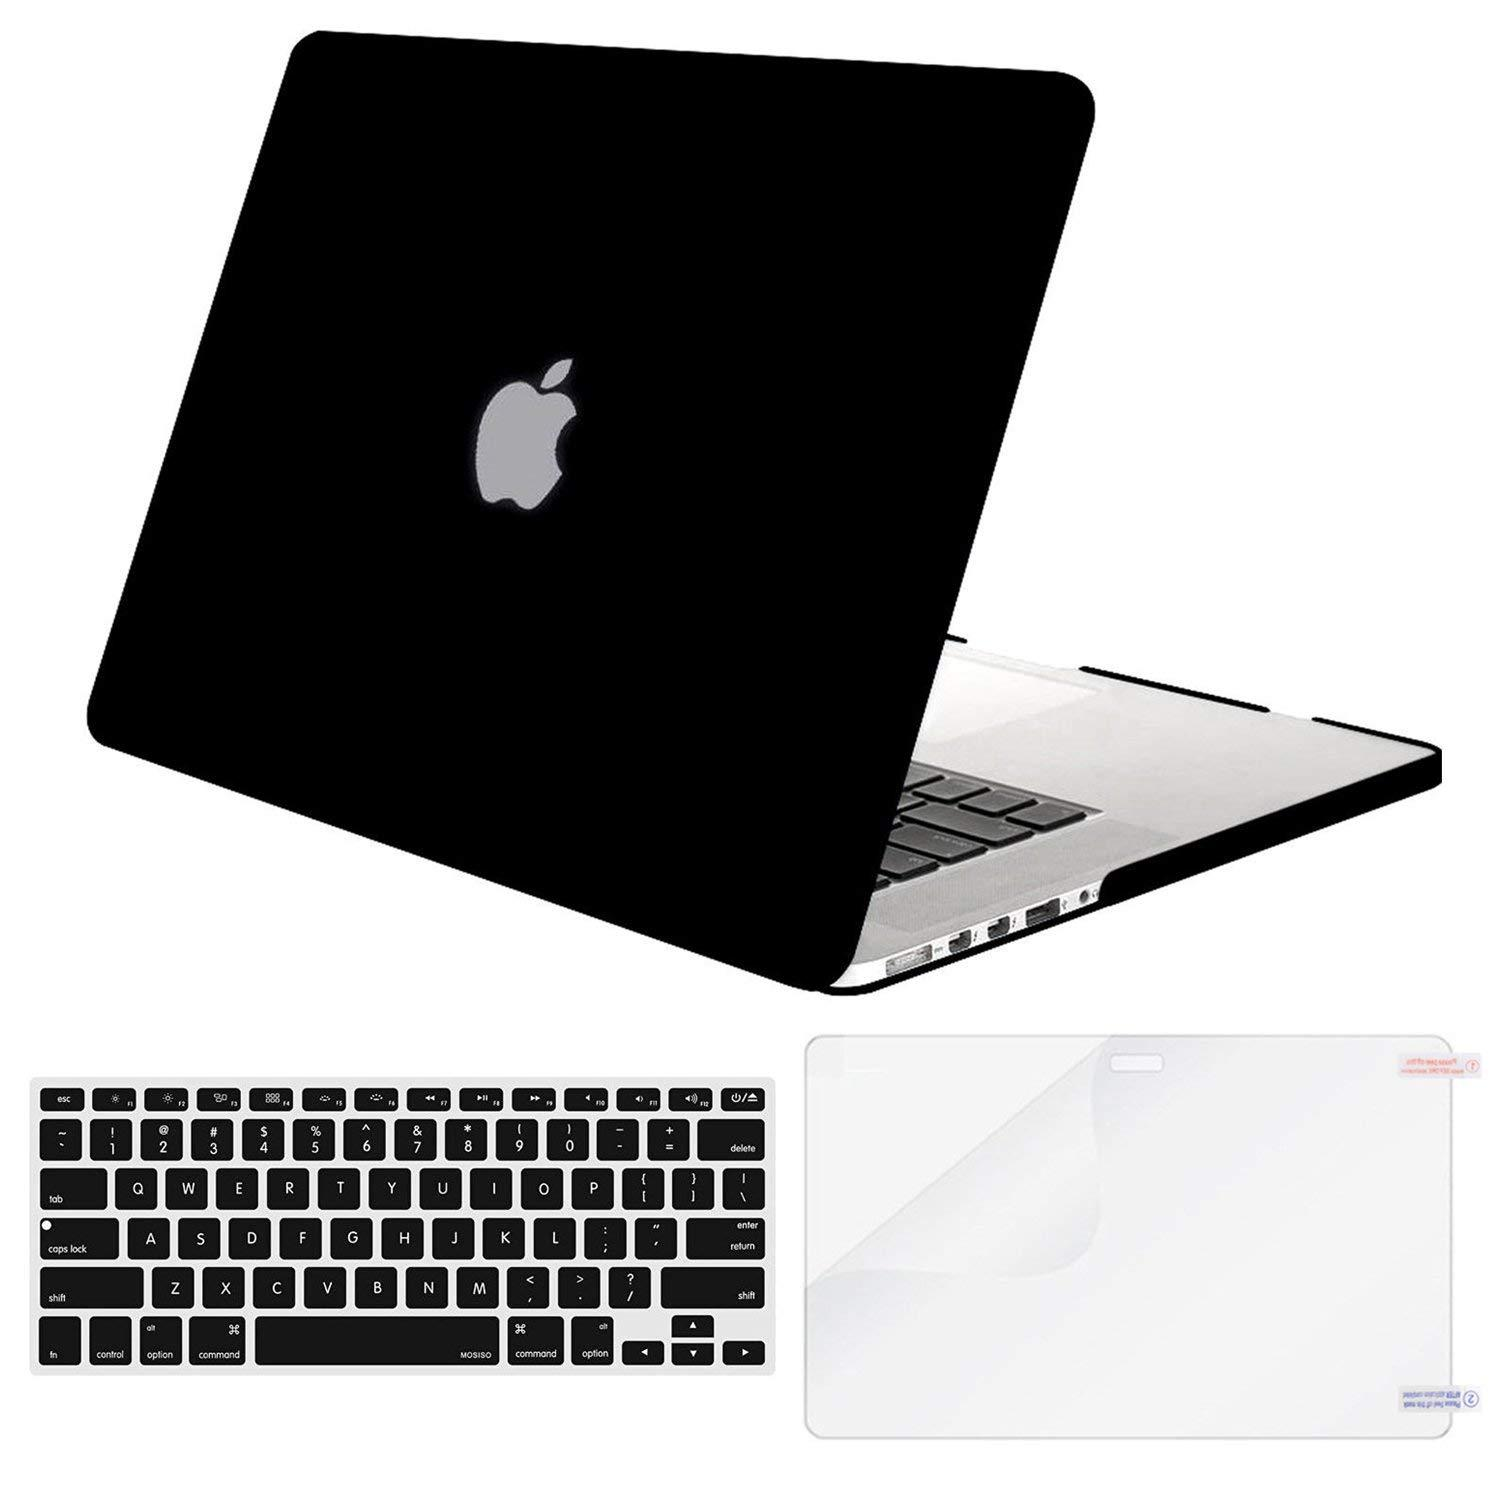 Mac Hard Covers For Sale Apple Prices Brands Specs Softcase Laptop Notebook 116 Inch Macbook Case Only Compatible Pro W O Usb C Retina 13